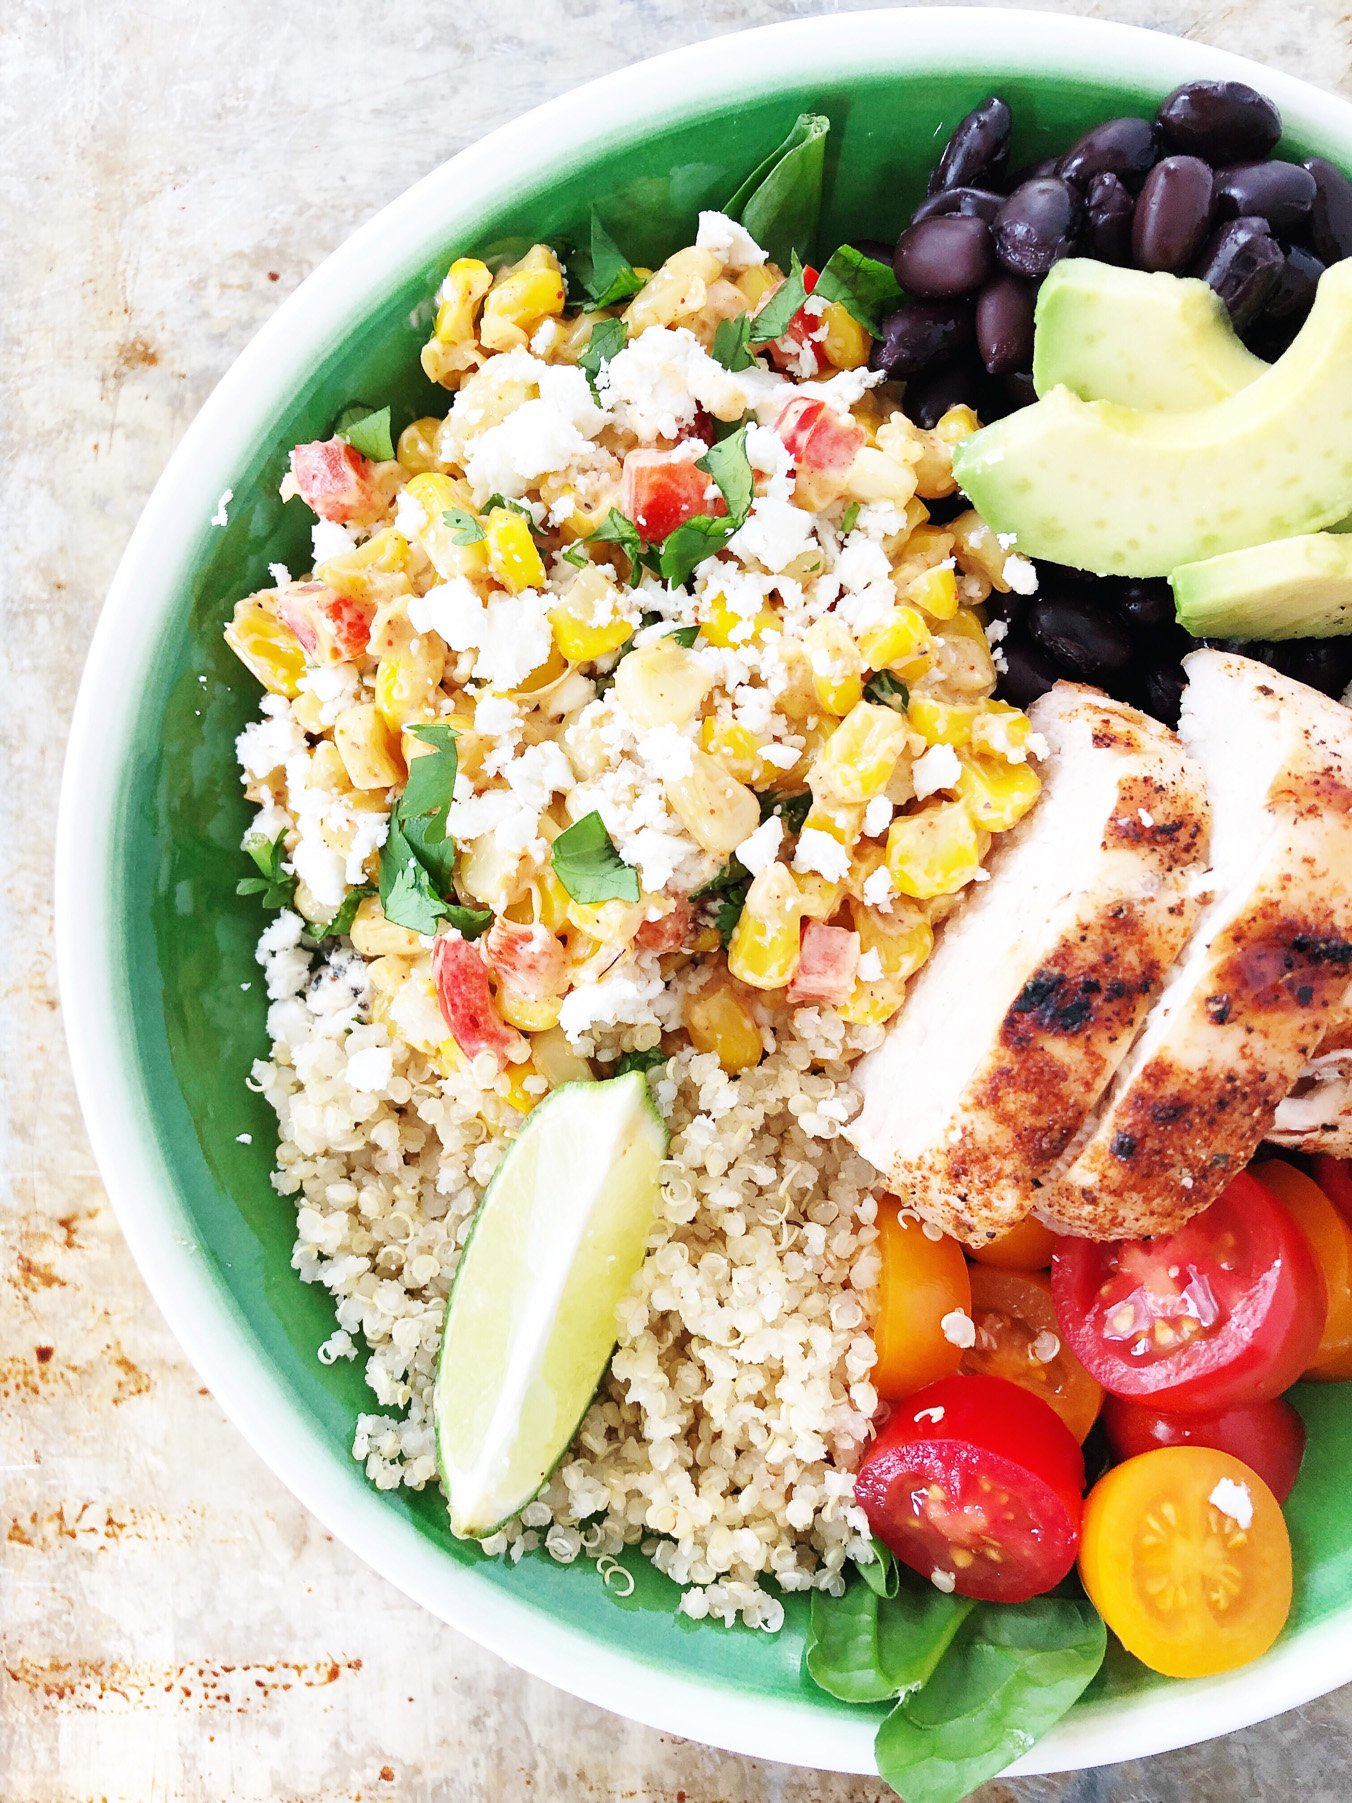 a bowl with corn, grilled chicken, diced tomatoes, avocados, quinoa and black beans